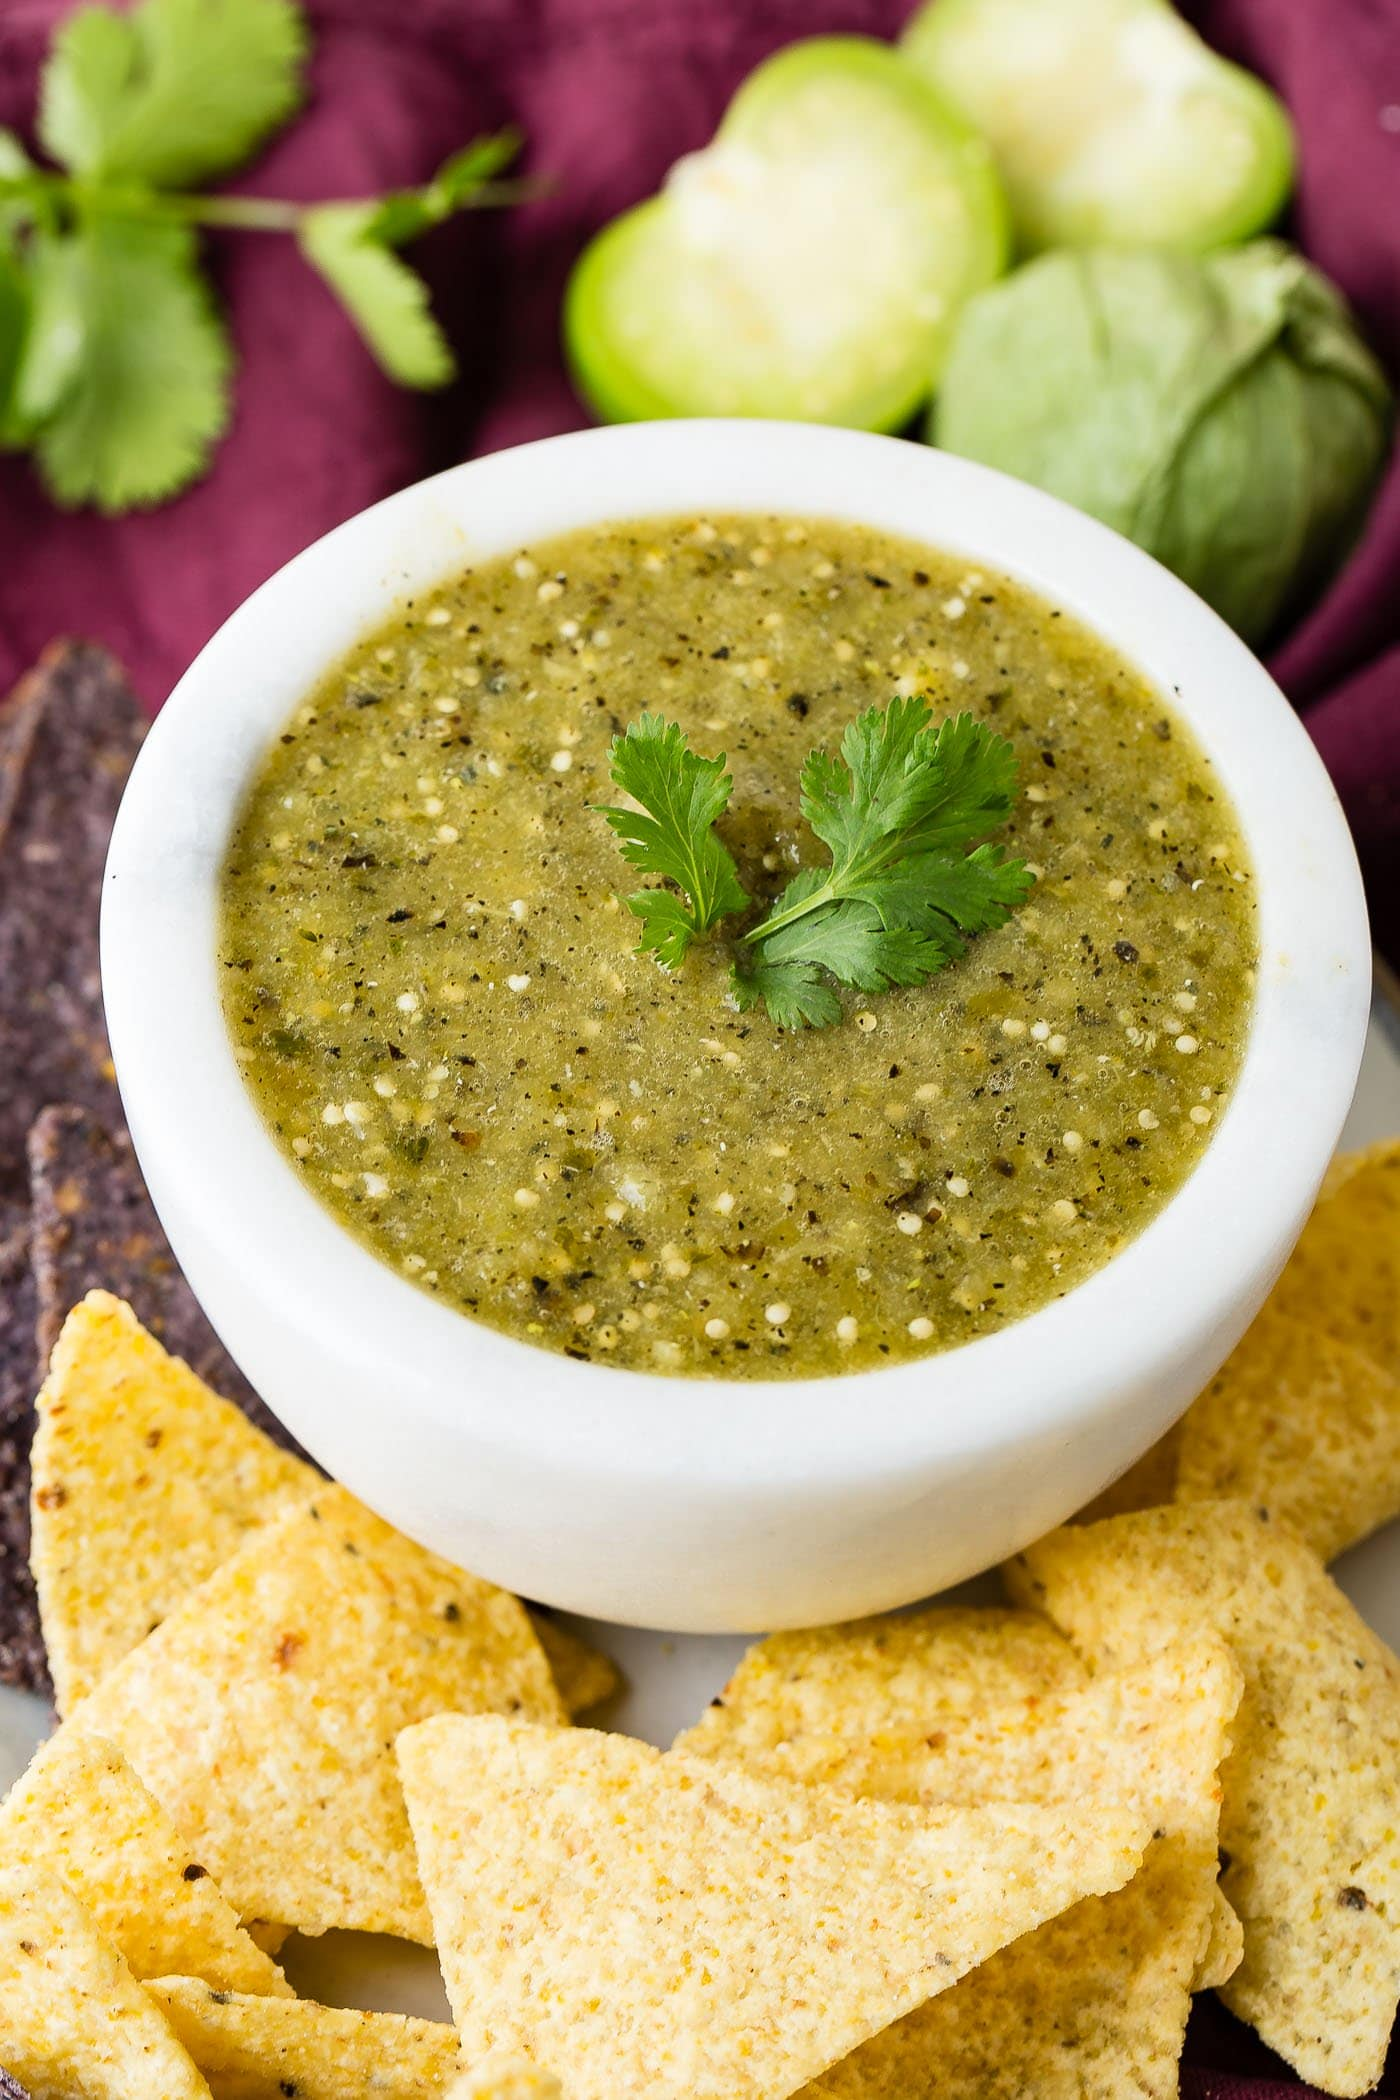 A white bowl of salsa verde with a couple of cilantro leaves on top. The bowl is surrounded with corn chips and there are tomatillos and cilantro leaves in the background.